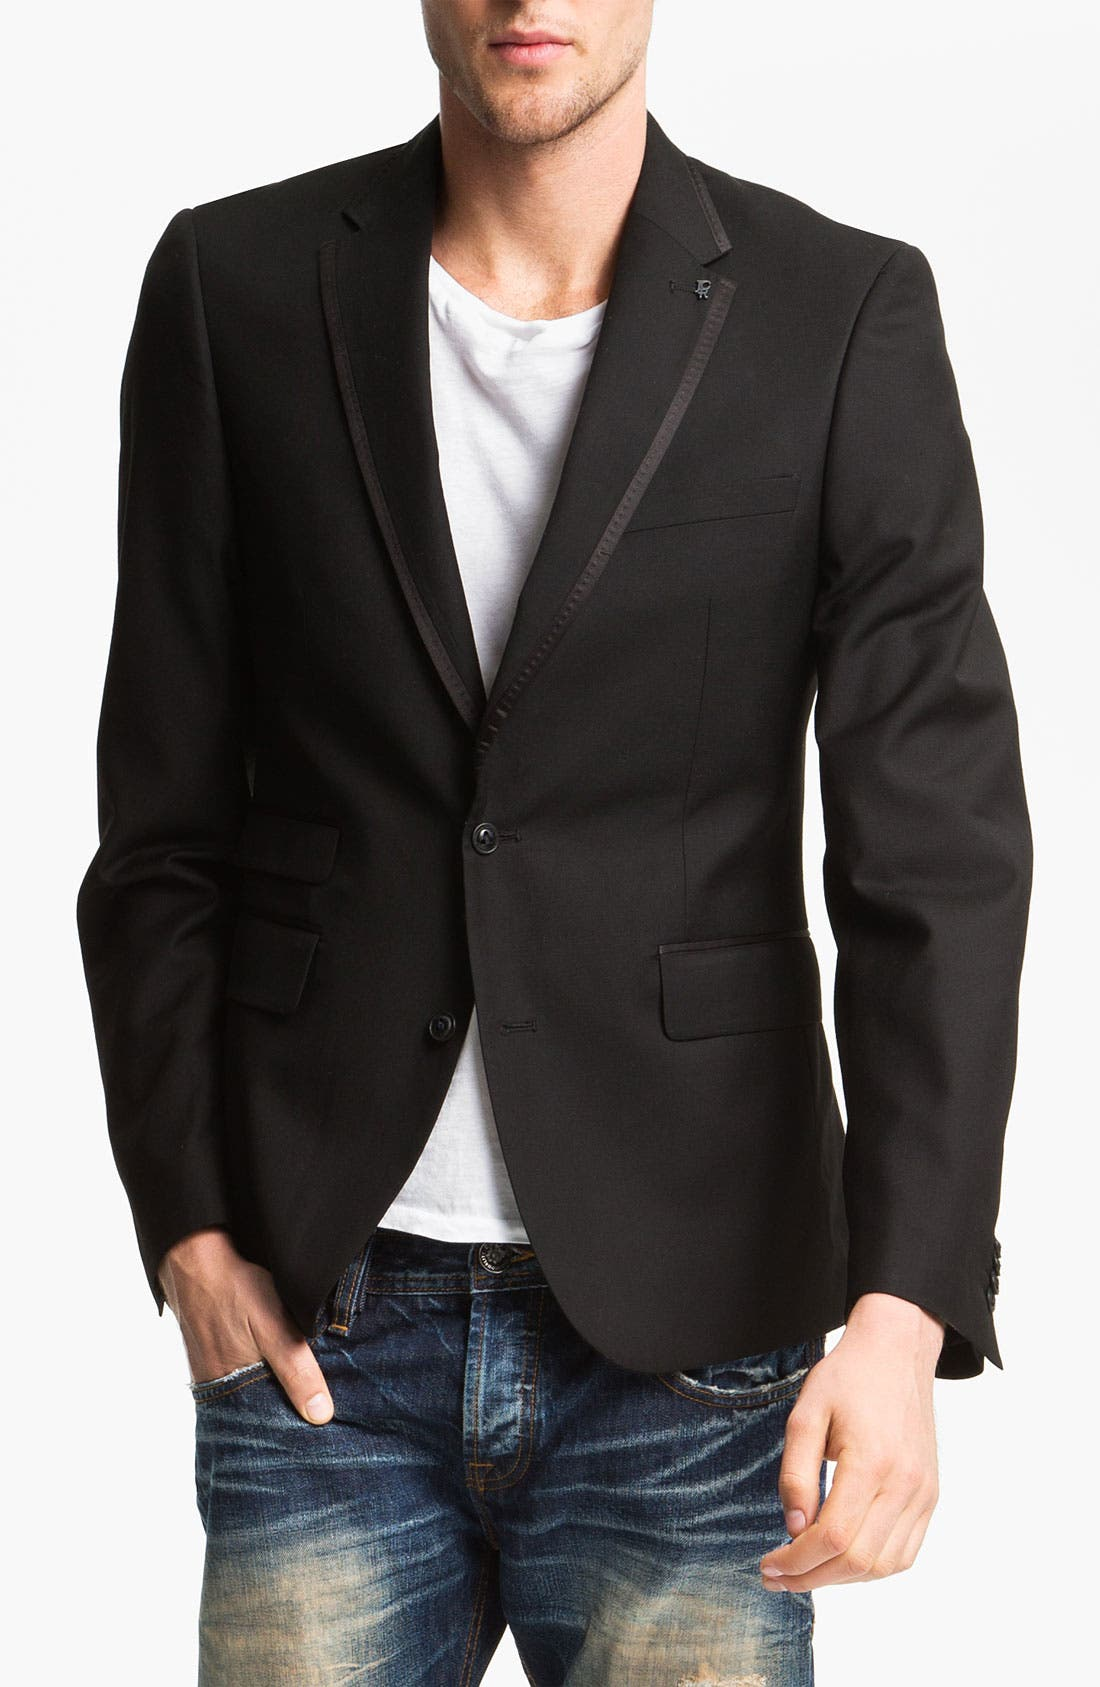 Alternate Image 1 Selected - J.C. Rags Extra Trim Fit Twill Blazer